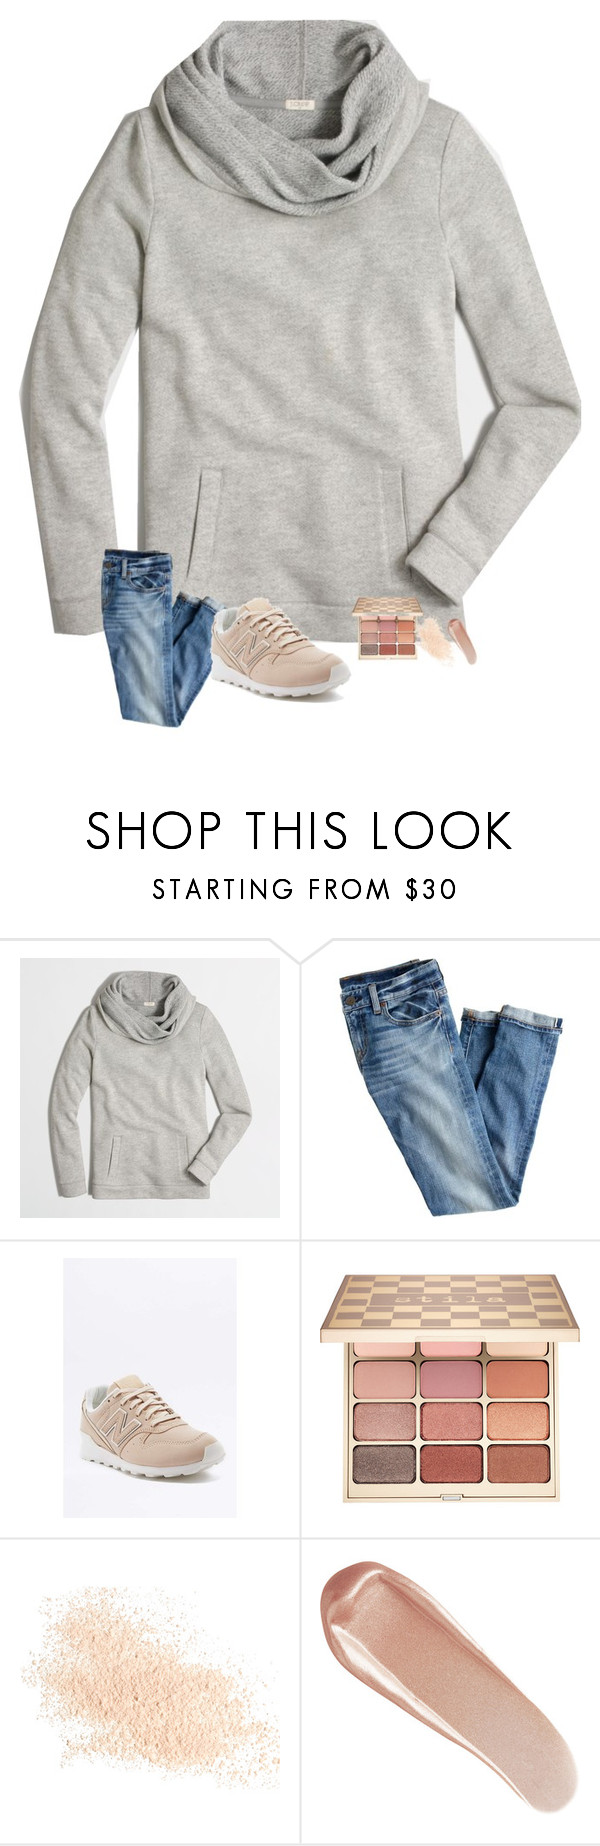 """""""watching the last episode of stranger things! & bachelor later tonight 🌹"""" by preppinessandpearls ❤ liked on Polyvore featuring J.Crew, New Balance, Stila, Eve Lom and NARS Cosmetics"""